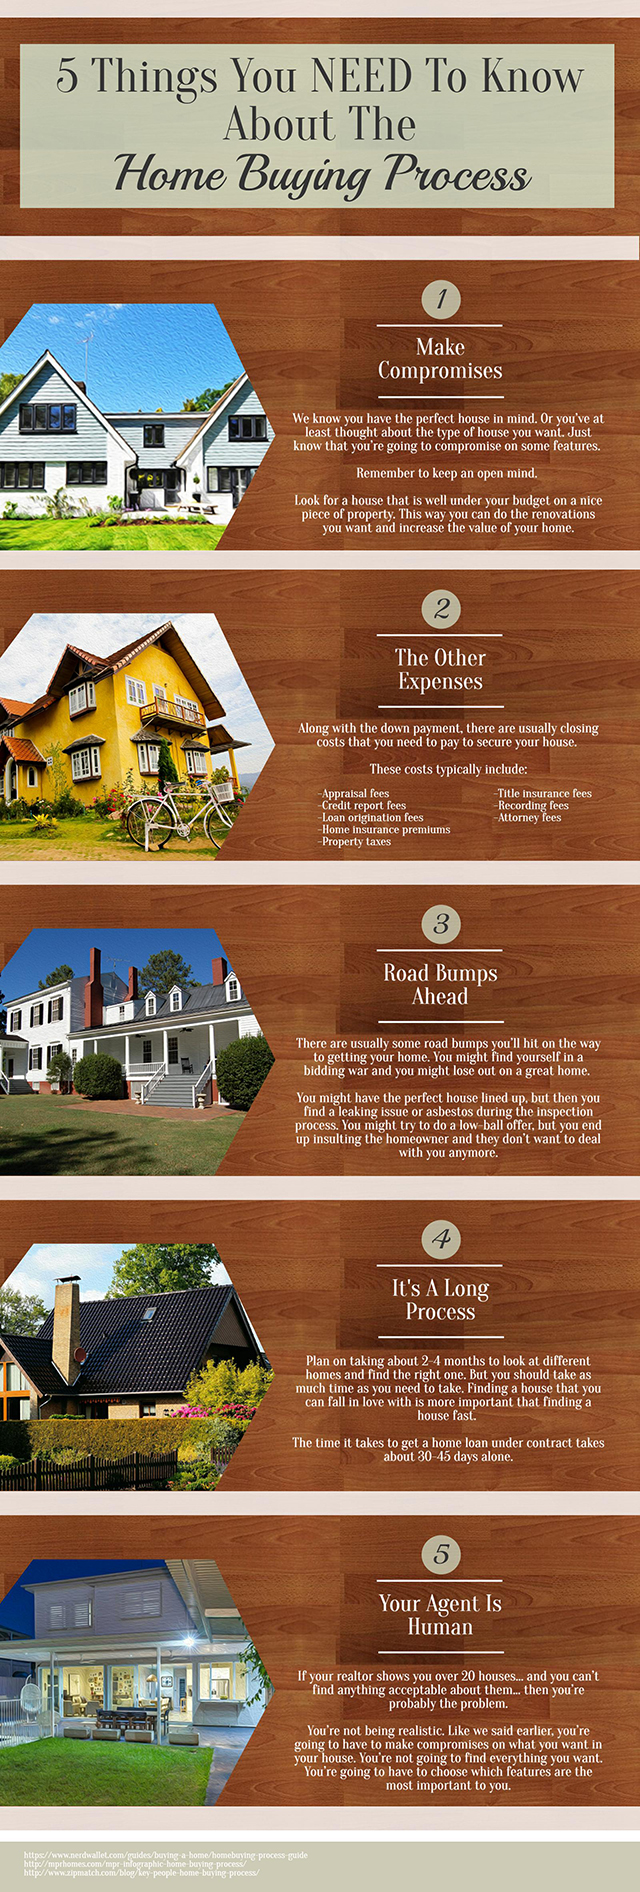 The Home Buying Process - Infographic